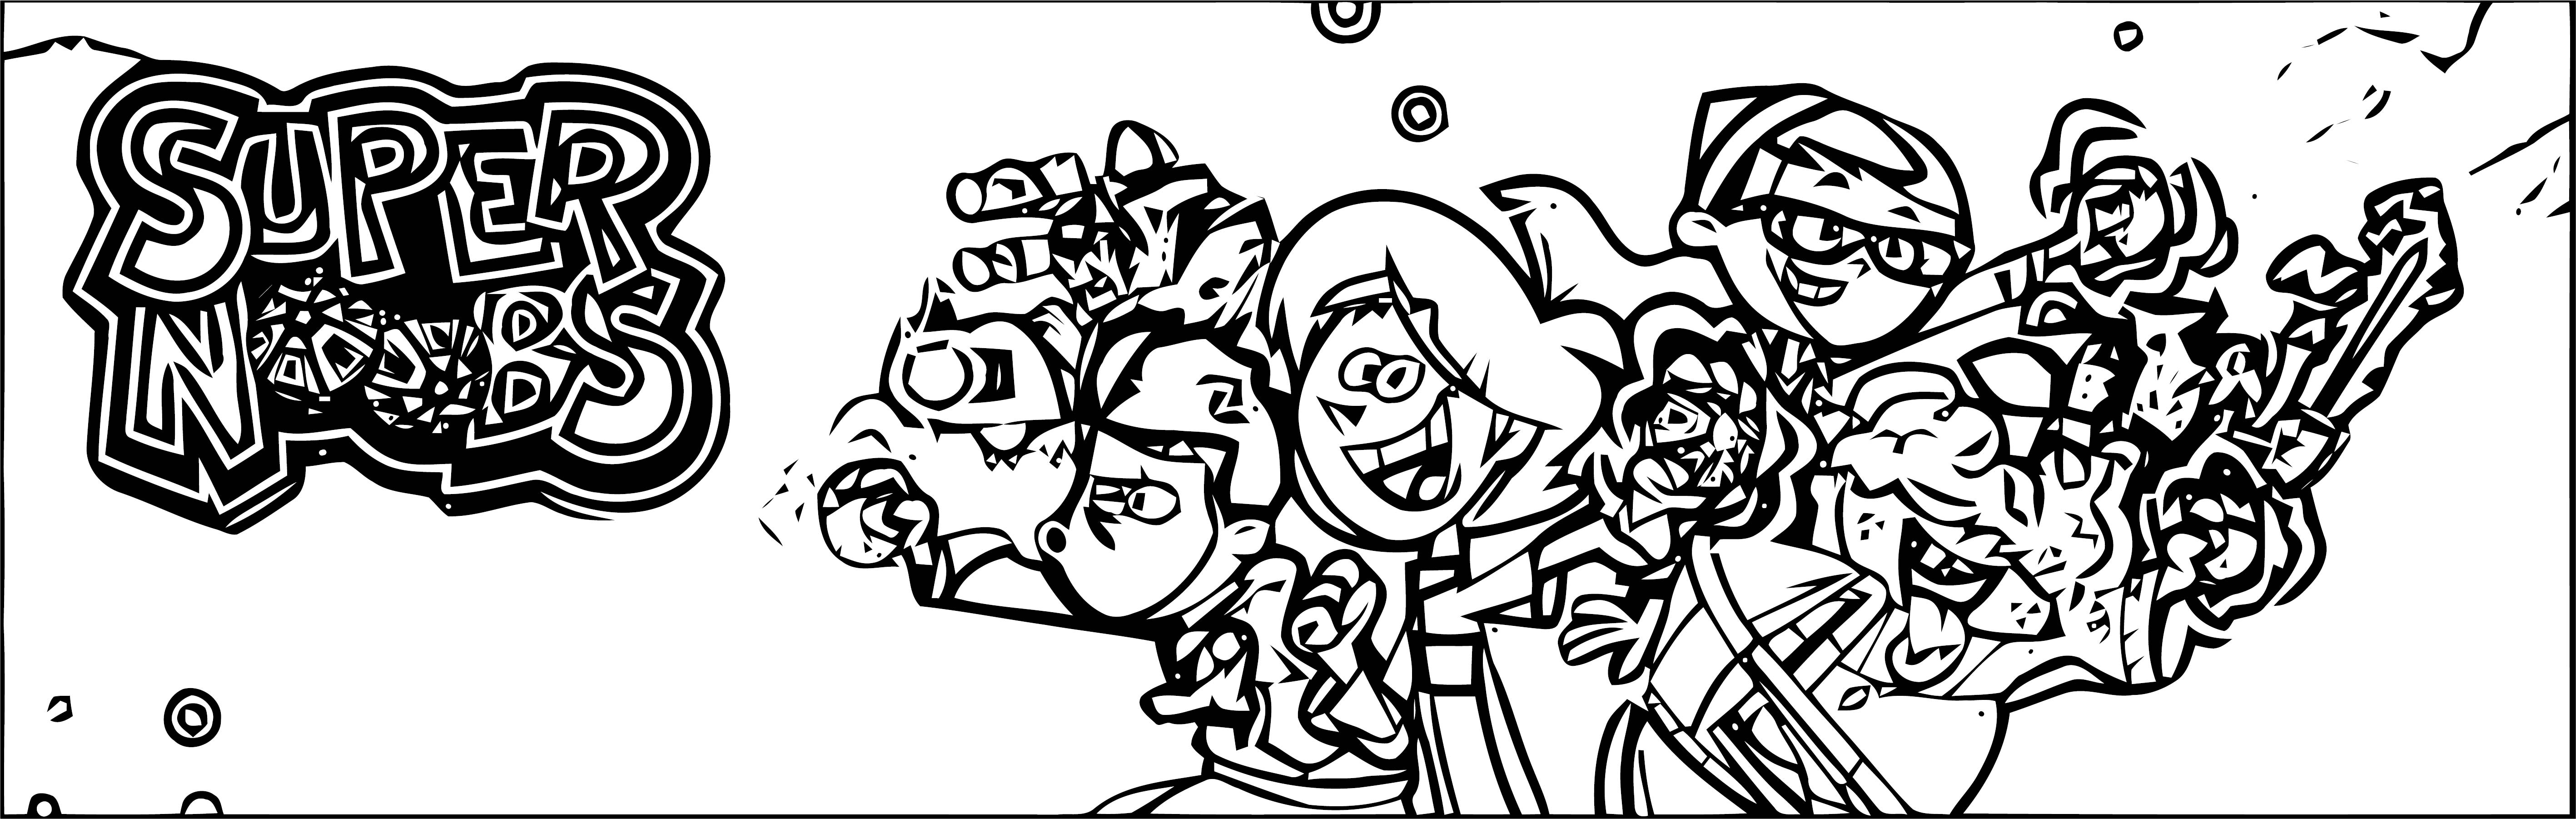 Supernoobs Coloring Page 49